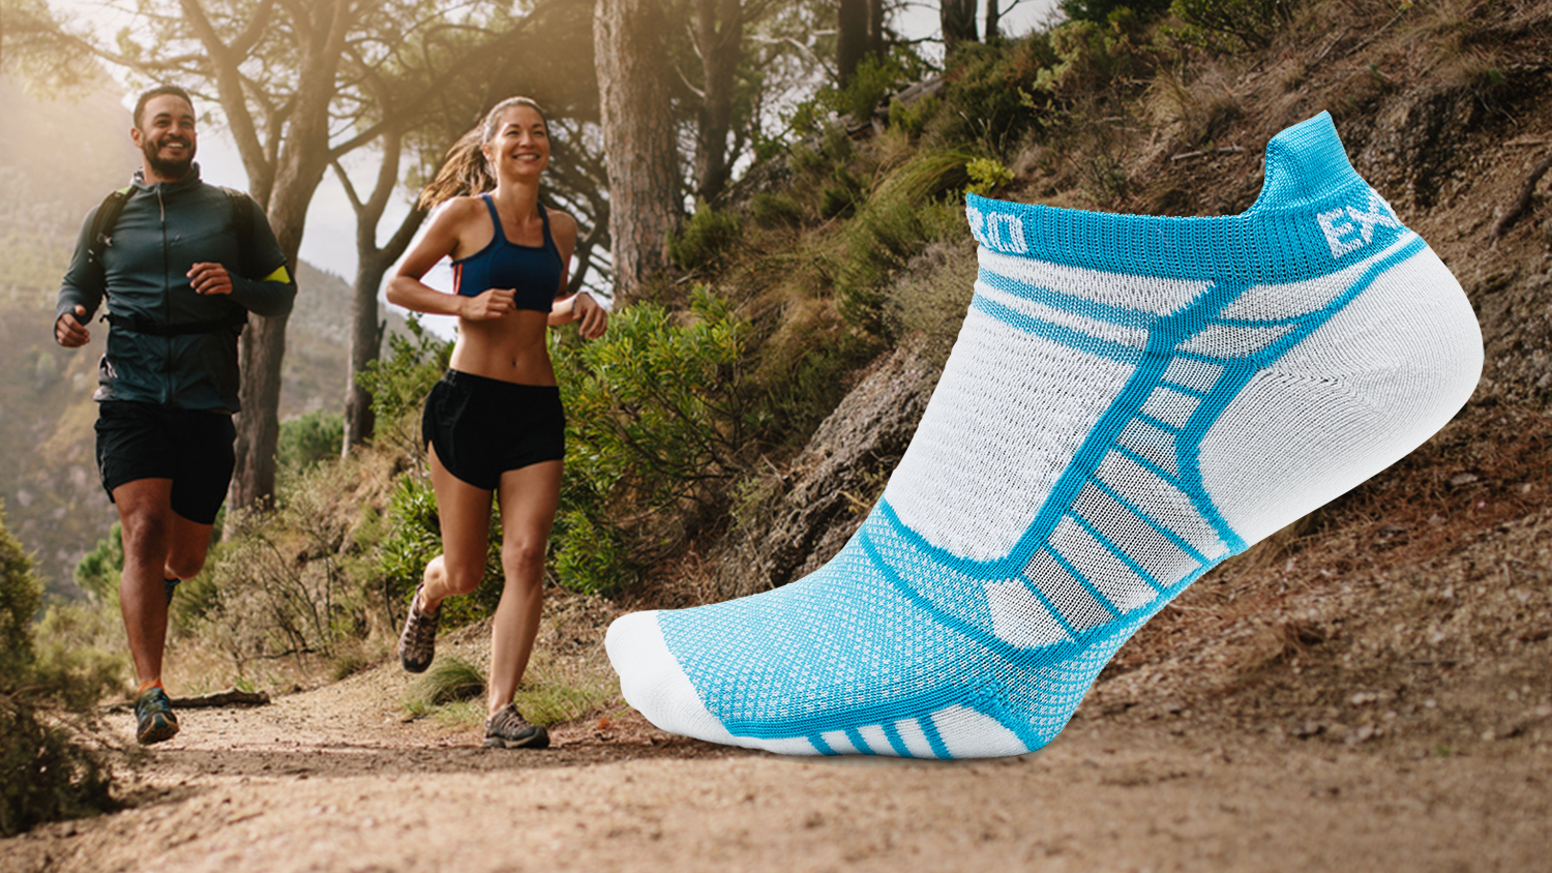 Up to 30% lighter than leading ultra-light running socks, yet virtually eliminates painful chafing, hot spots, and blisters.